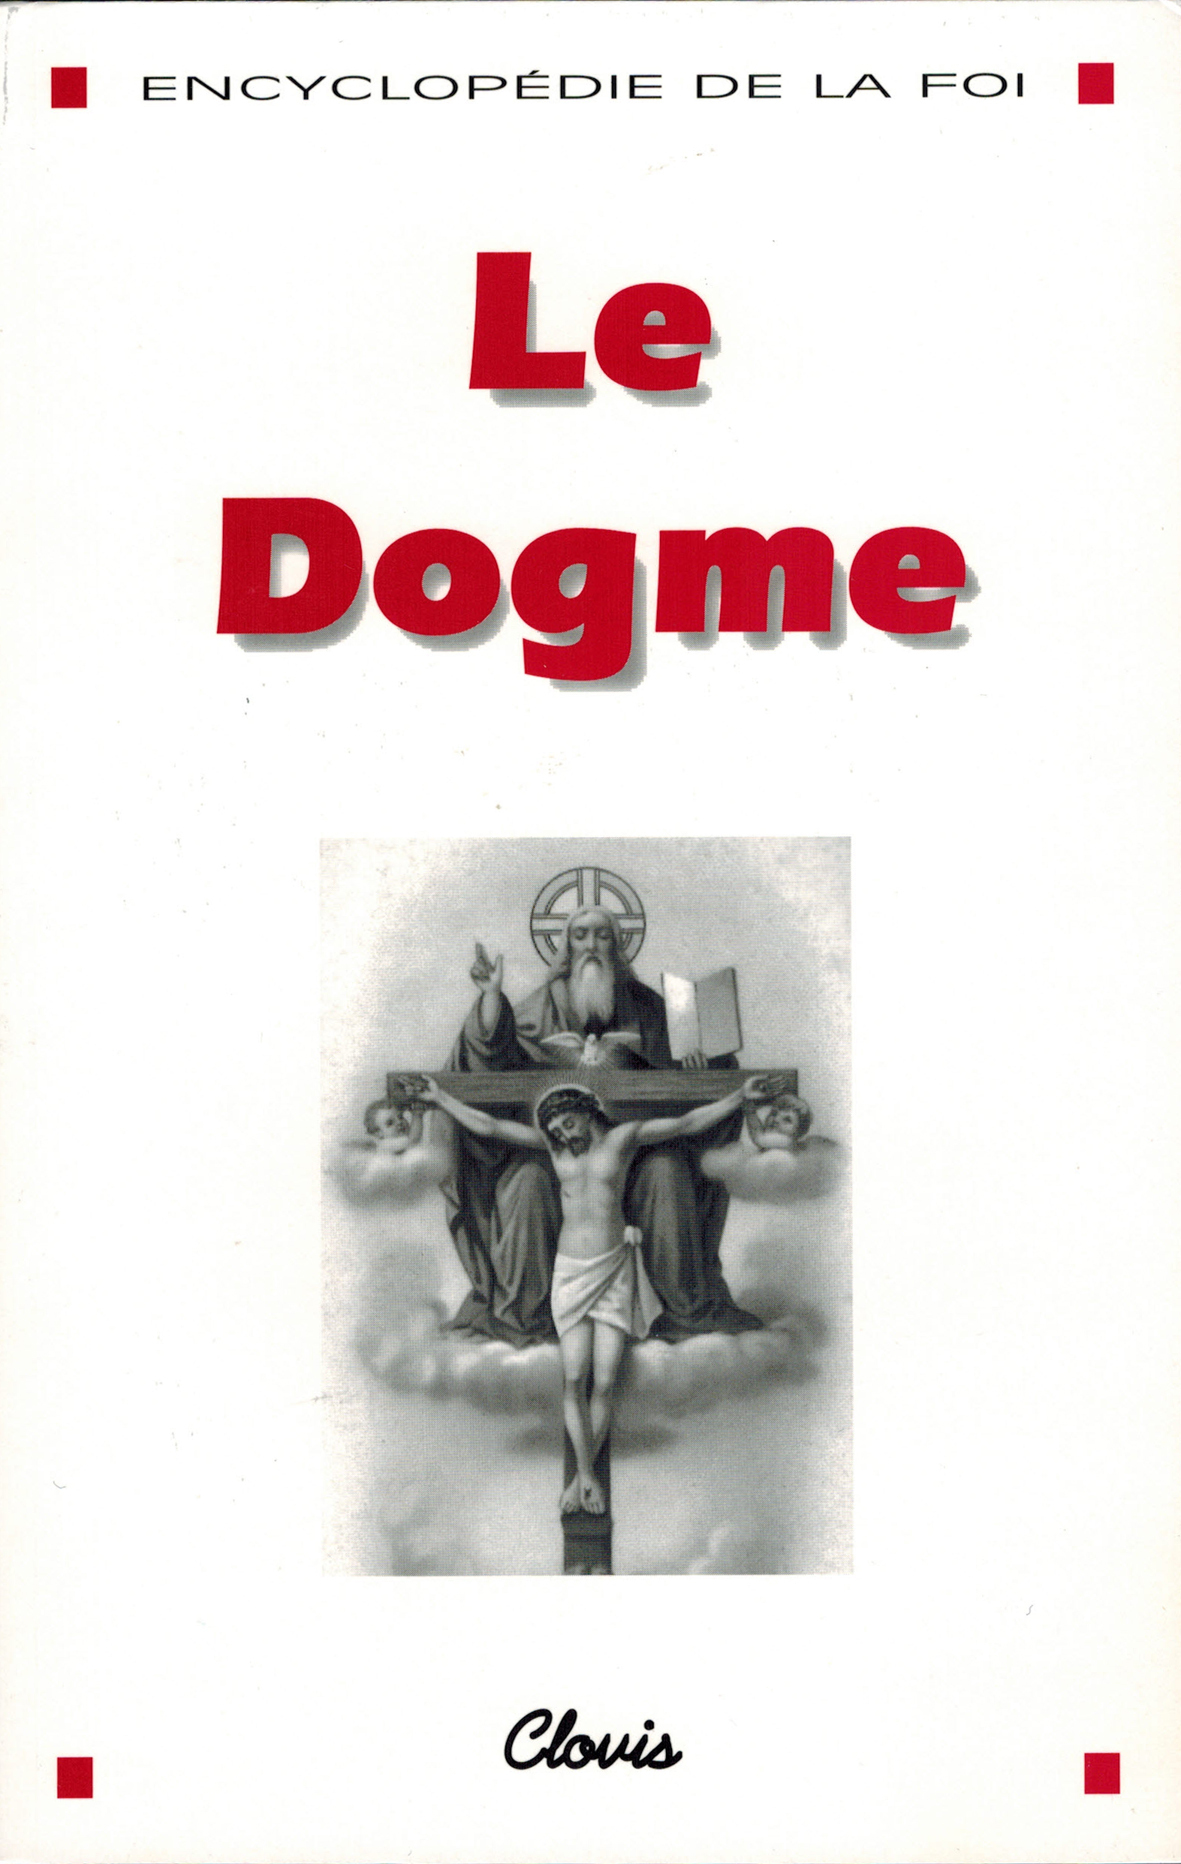 LE DOGME (ENCYCLOPEDIE DE LA FOI)